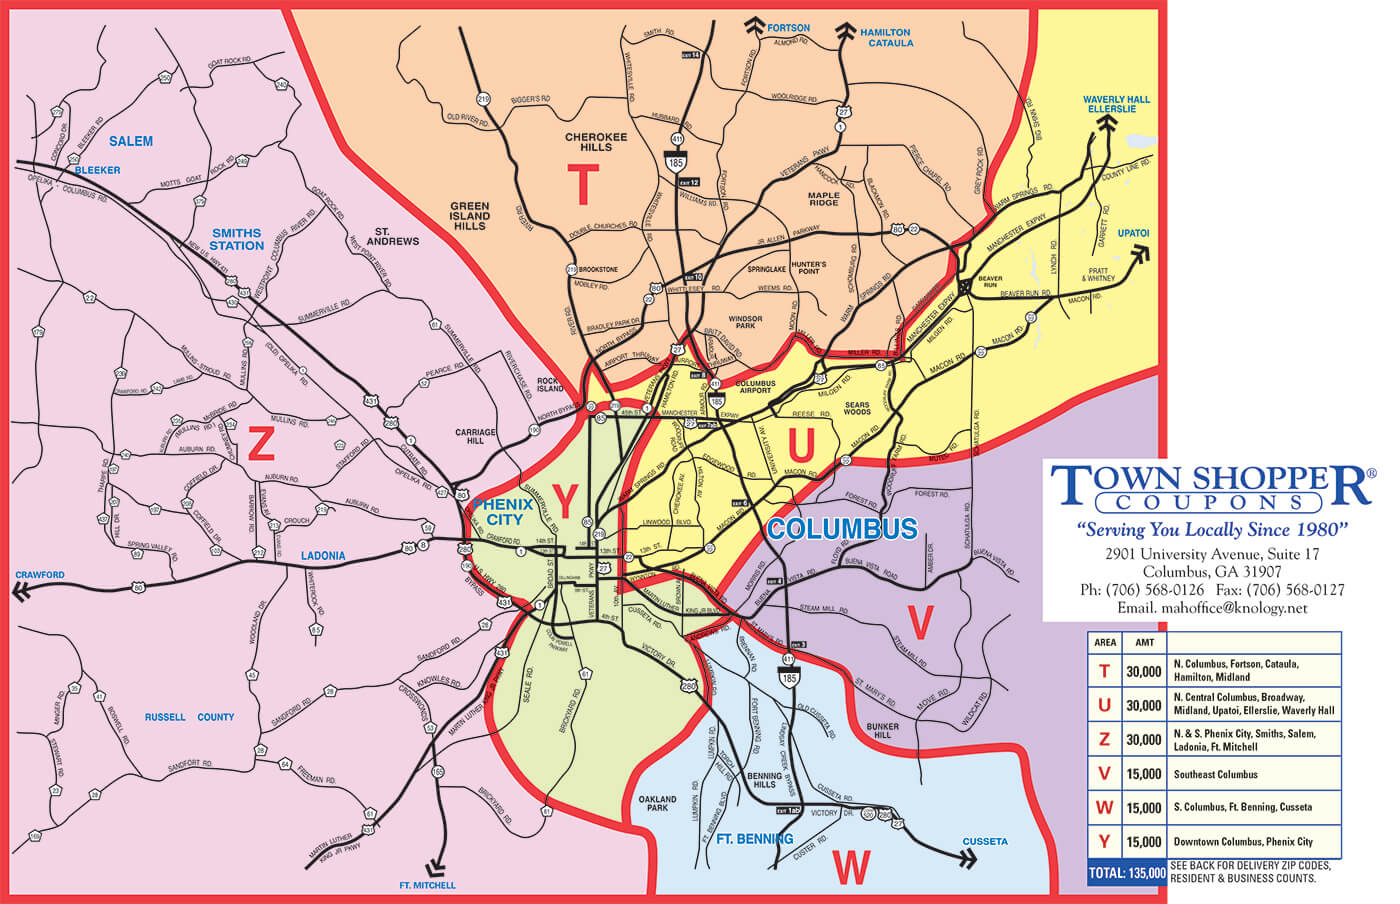 2017 Map Schedule for American Town Shopper Coupons